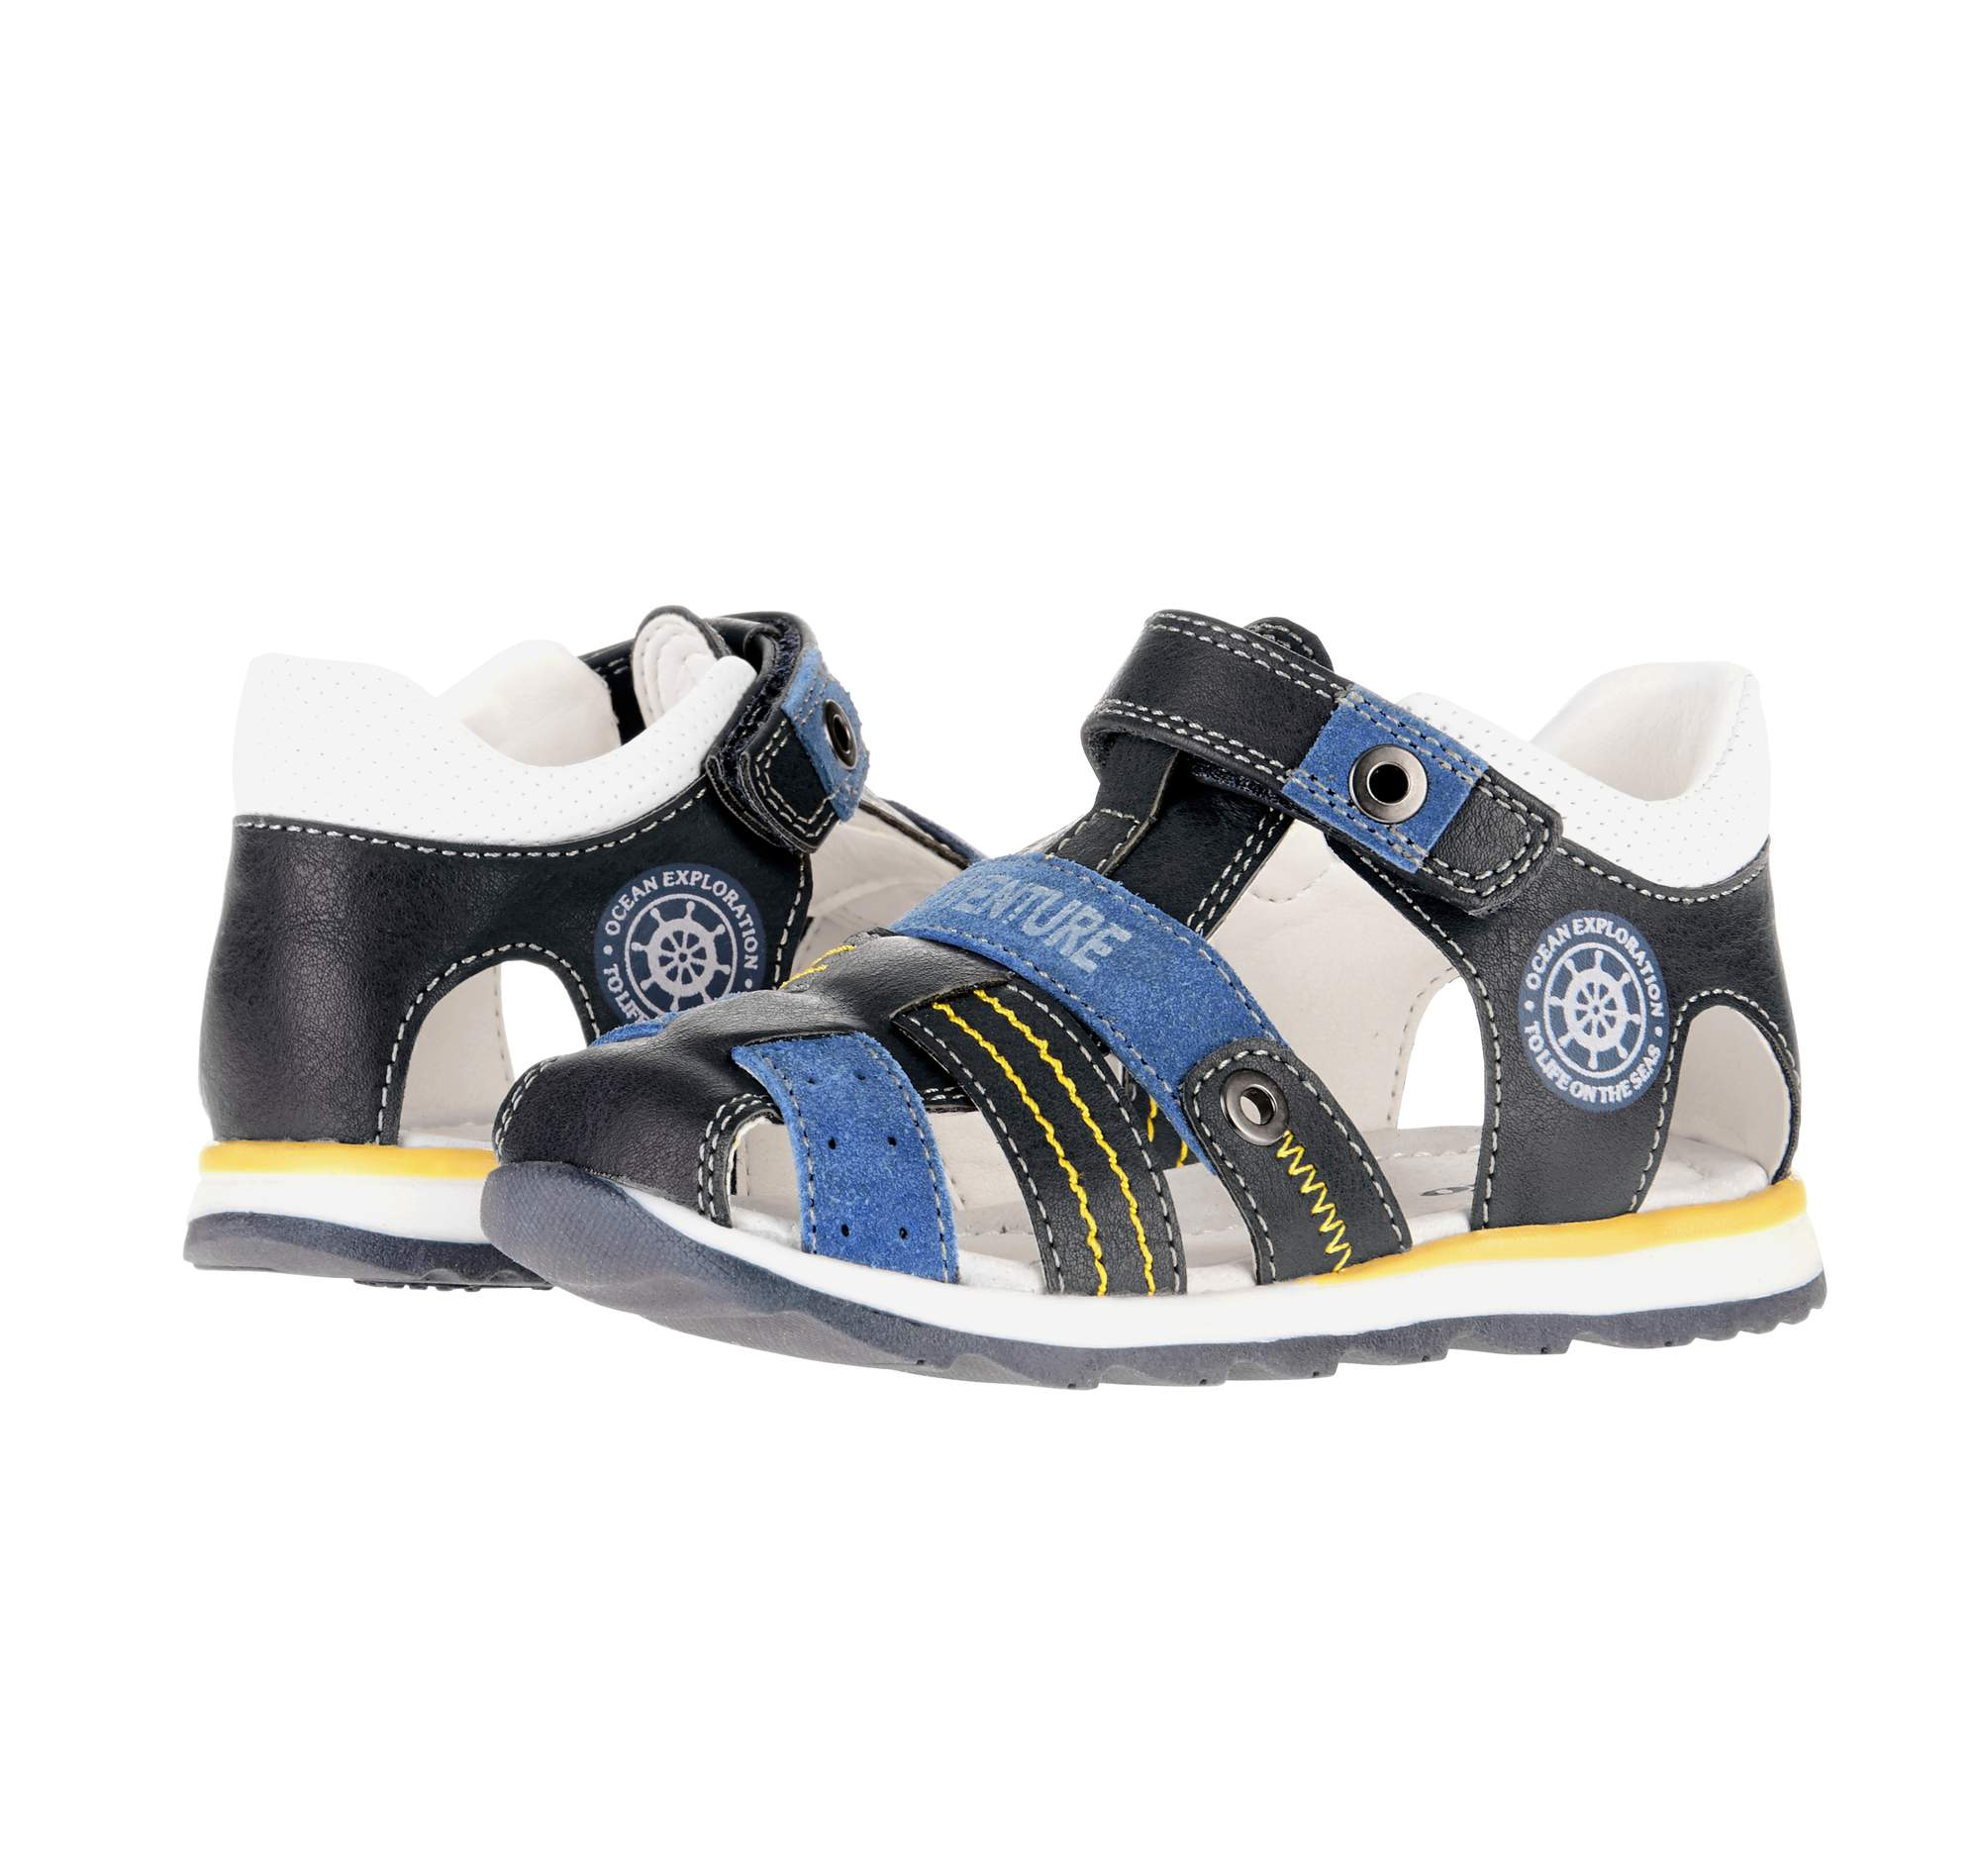 Beeko Toddler Boys' Garth Fisherman Sandal